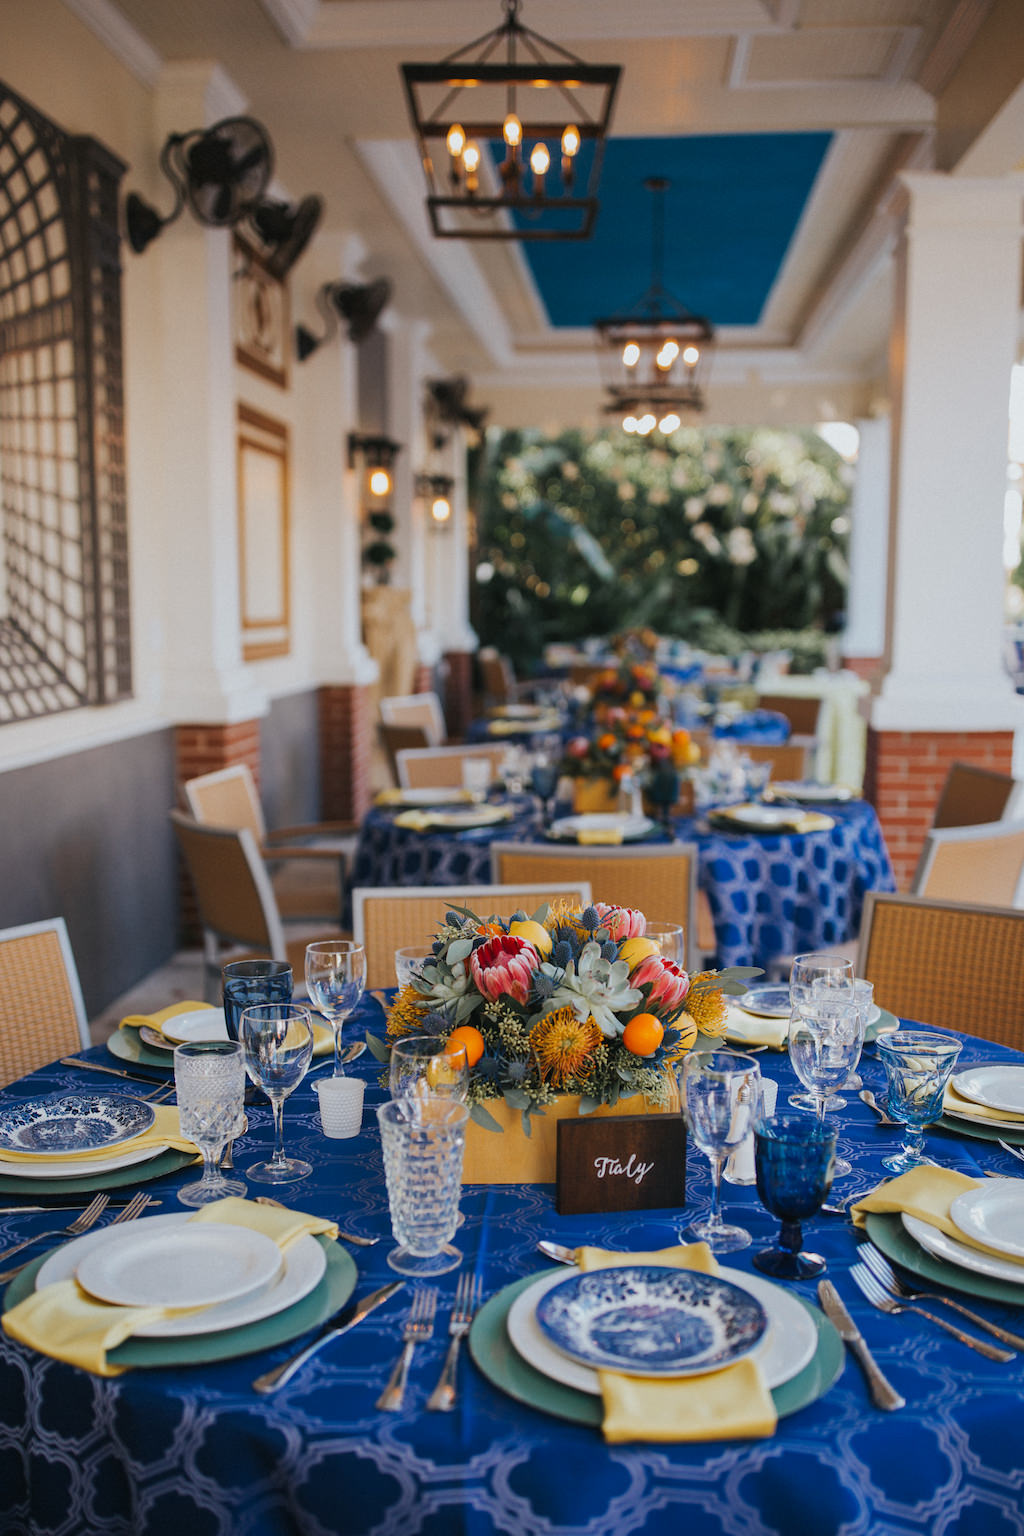 Mediterranean Inspired Wedding Reception Round Table Decor with Low Yellow, Orange, Pink and Succulent Greenery Centerpiece, Wooden Table Number European Country Names Sign with White Script, Sage Green Chargers and Yellow Napkins, Cobalt Blue Patterned Tablecloth, and Blue Painted China Plates | Sarasota Wedding Planner Jennifer Matteo Event Planning | Over the Top Rental Linens